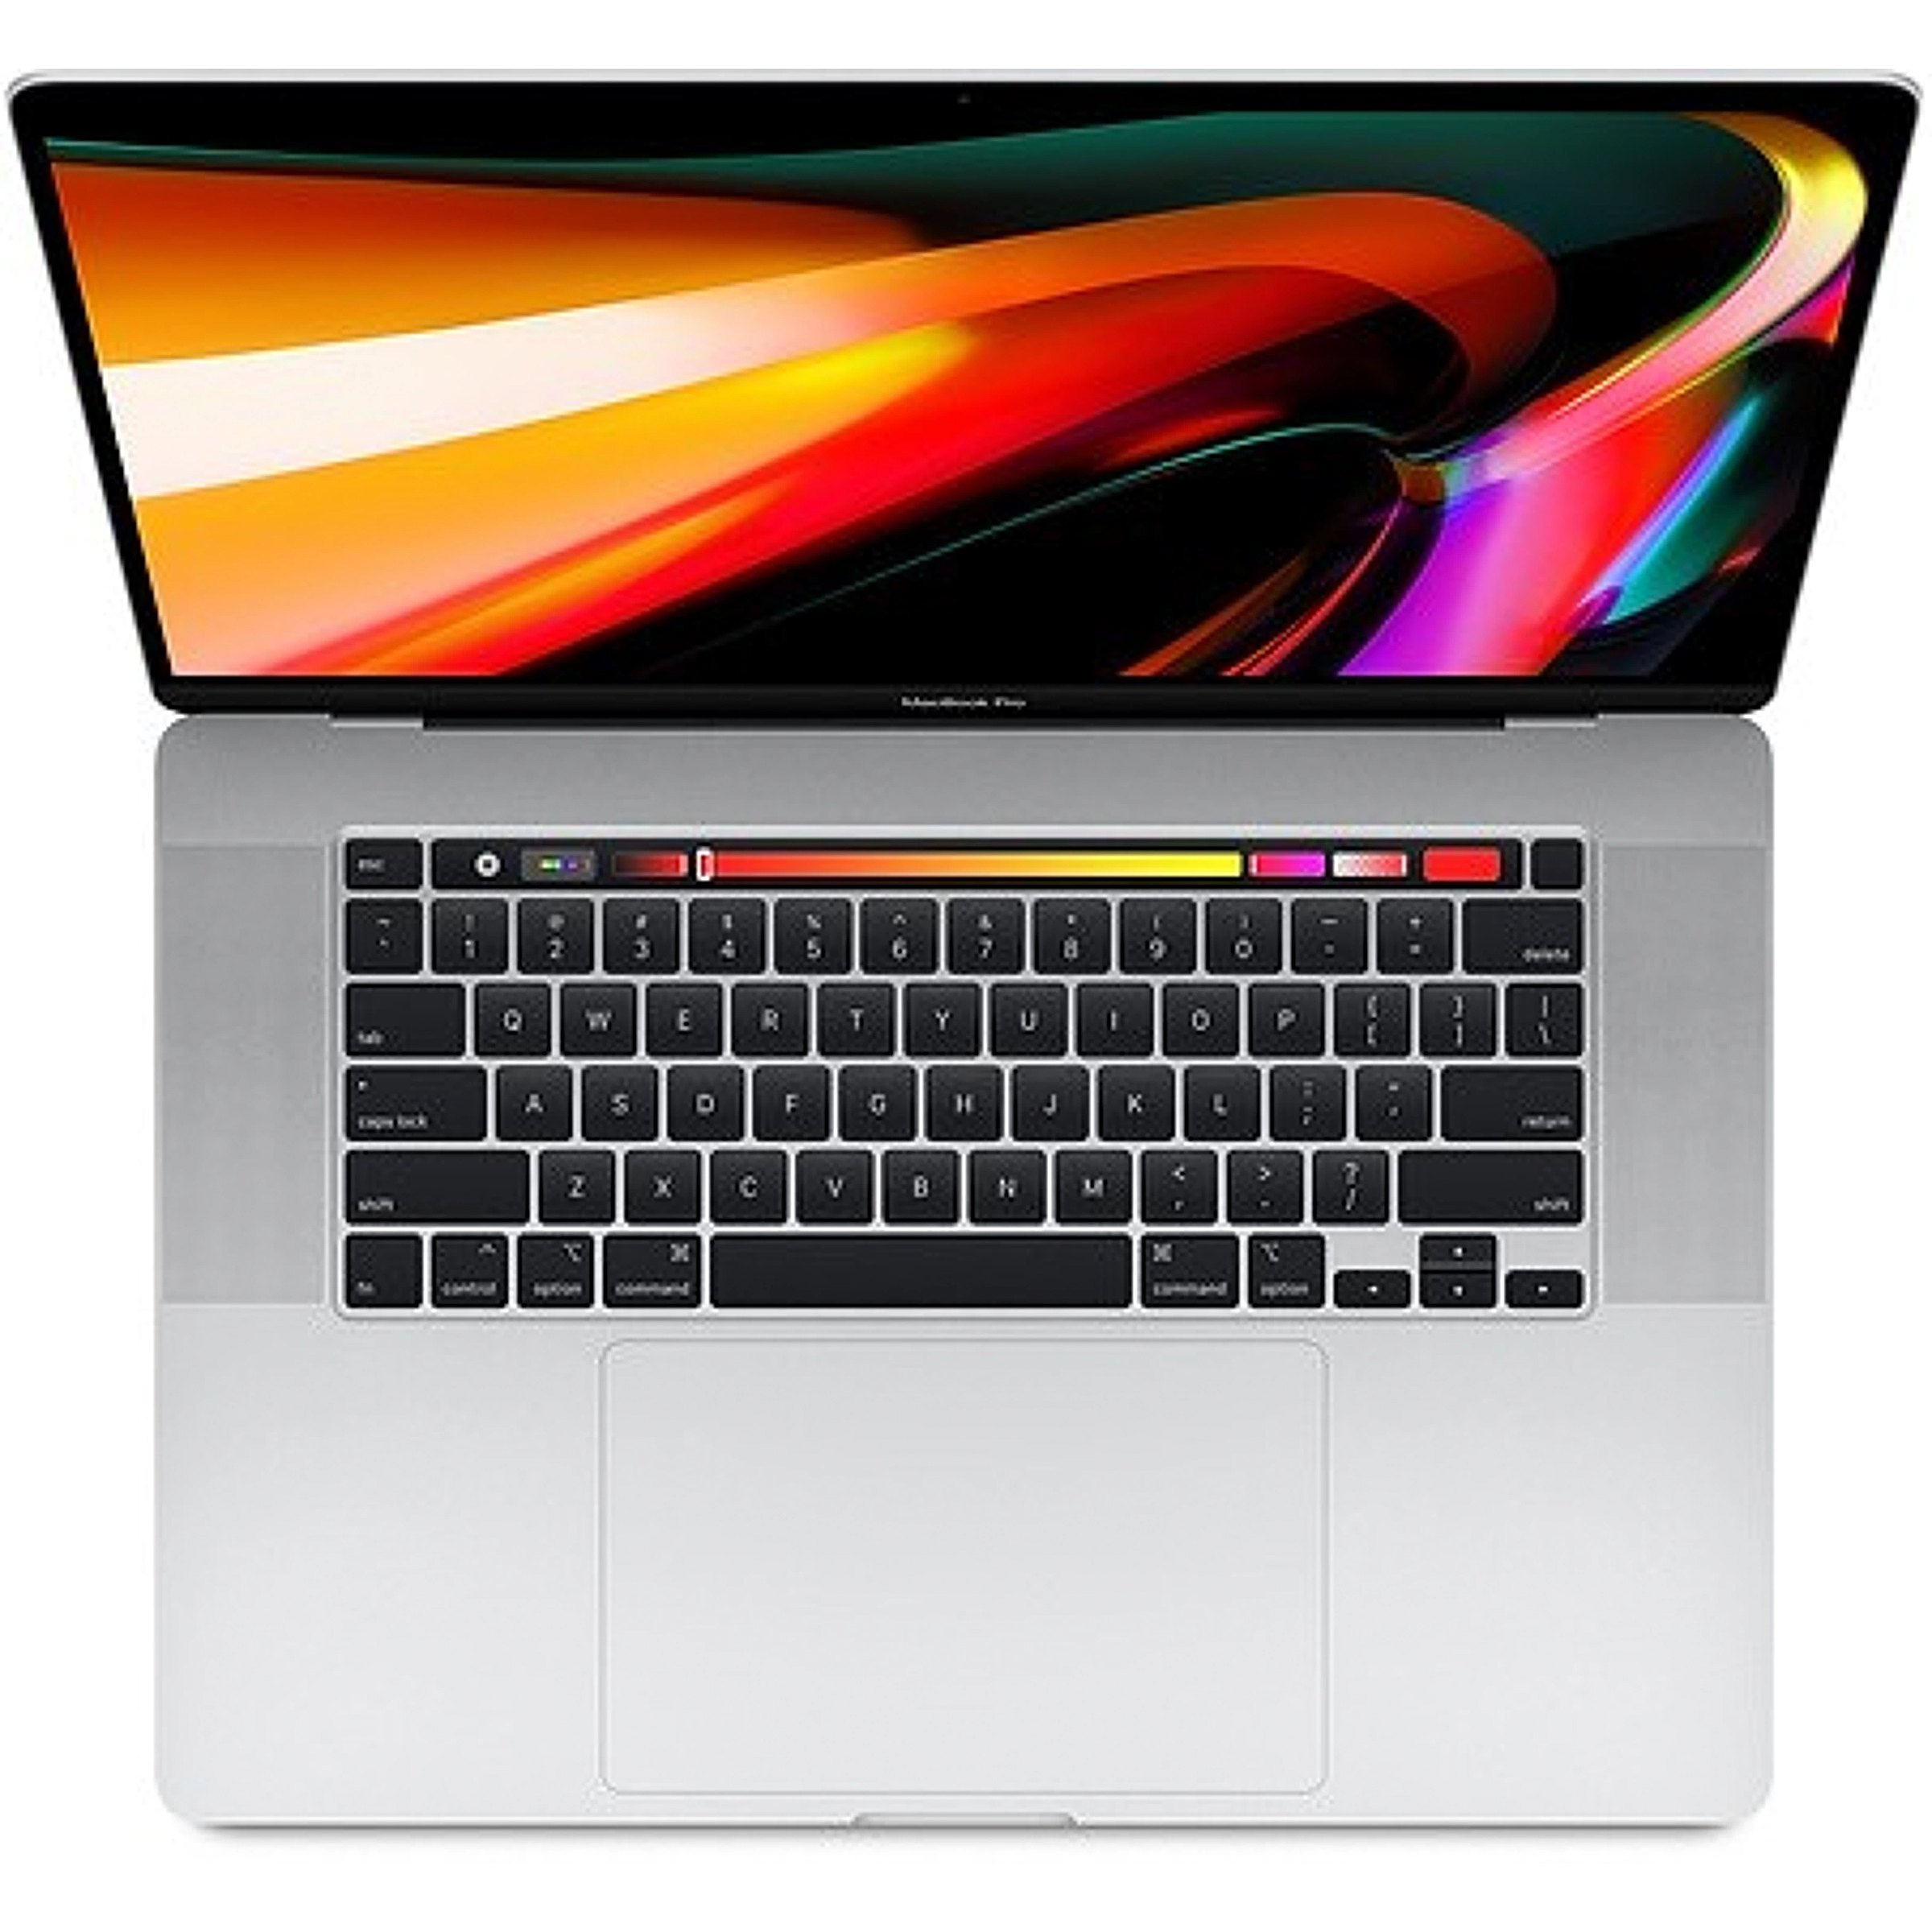 Apple MacBook Pro (16-inch, 2019) Silver, Core i9-9880H, 16GB, 1TB SSD, Radeon Pro 5500M 4GB